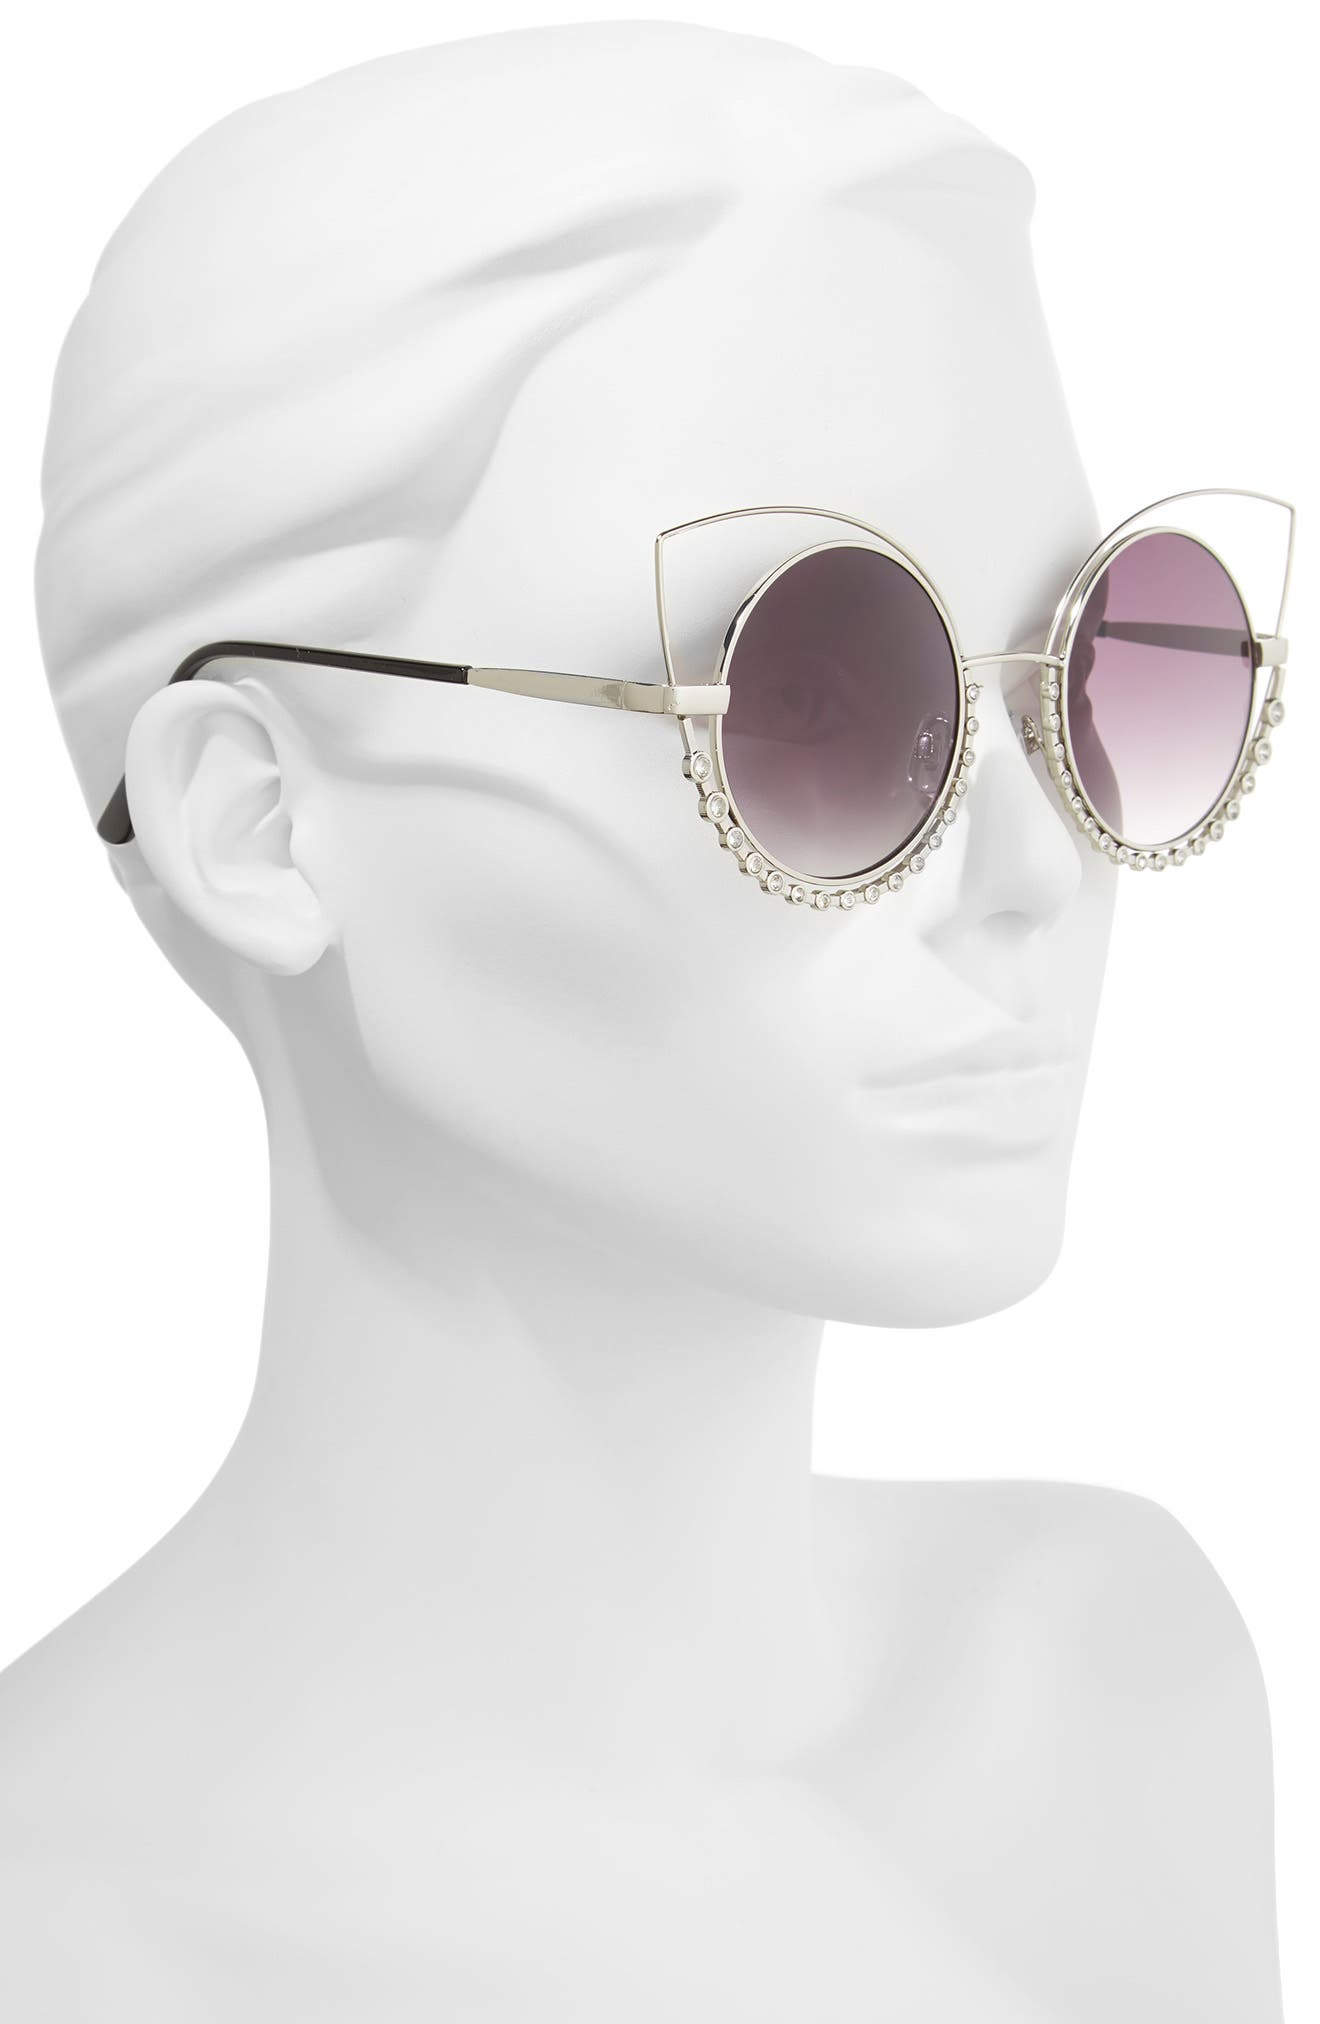 55mm Studded Round Sunglasses,                             Alternate thumbnail 2, color,                             040